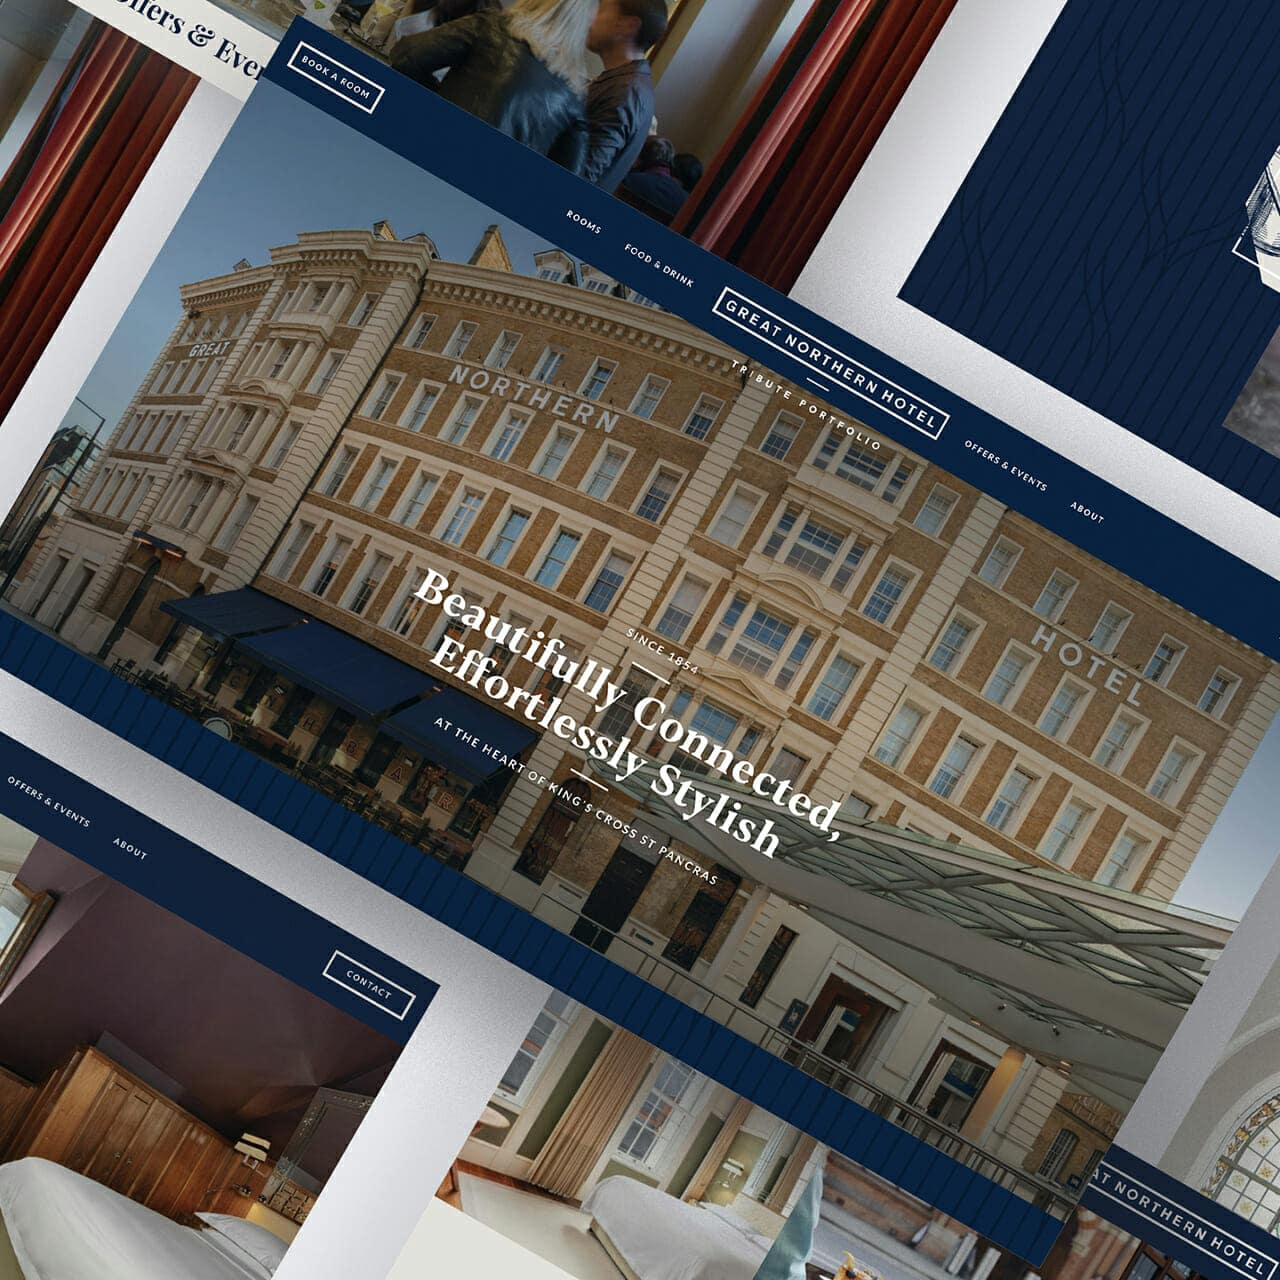 Luxury Hotel website and branding